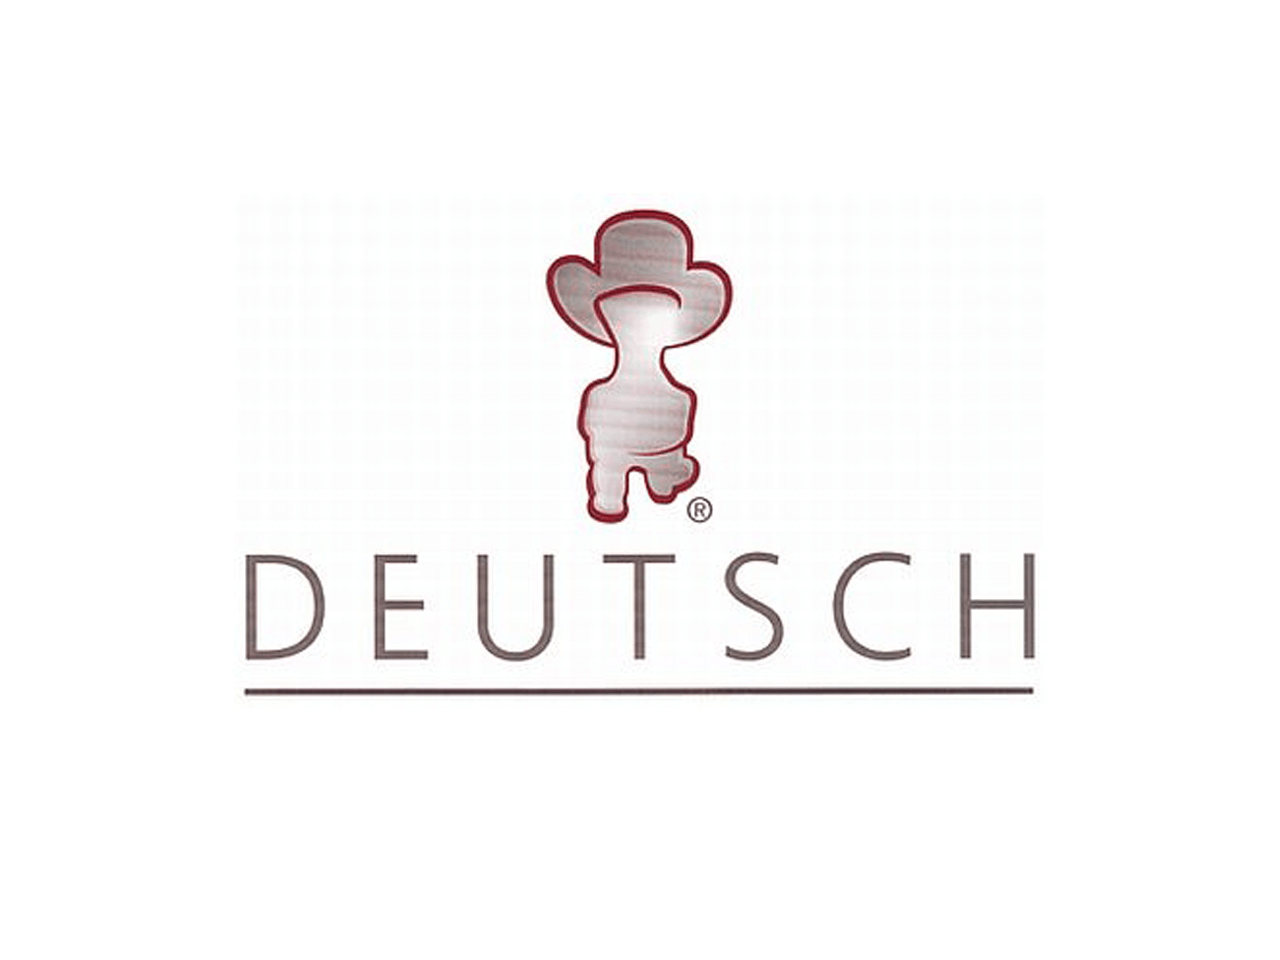 Deutsch Aerospace